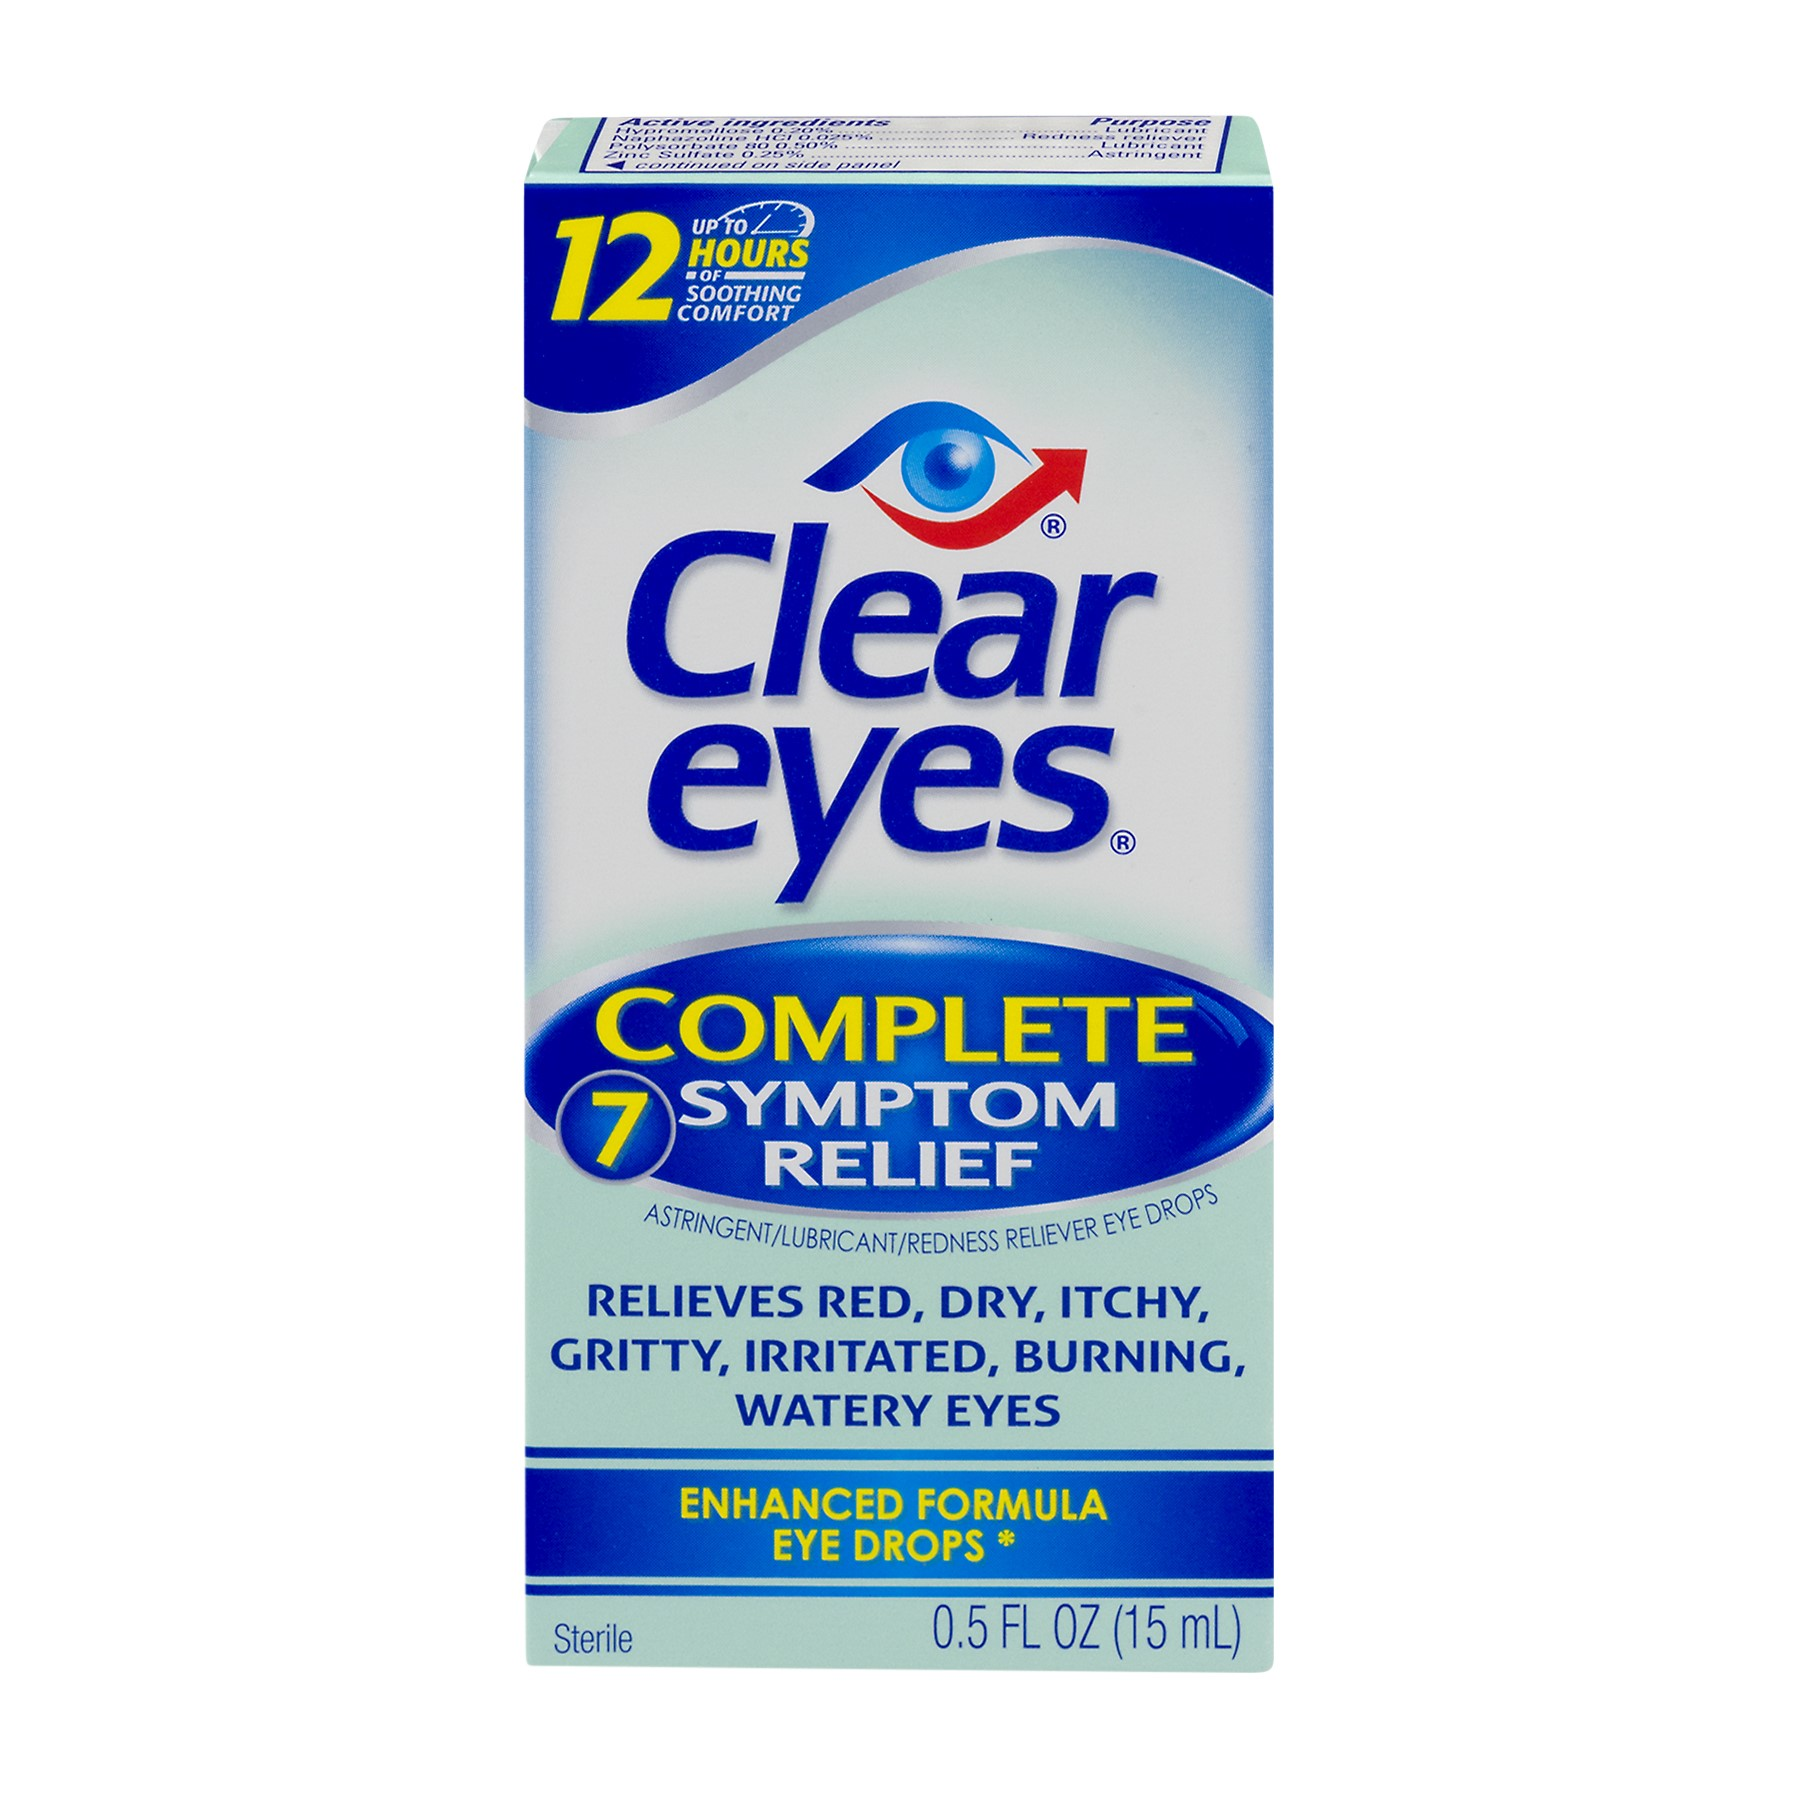 Clear Eye Complete 7-Symptom Relief Eye Drops, 0.5 Oz